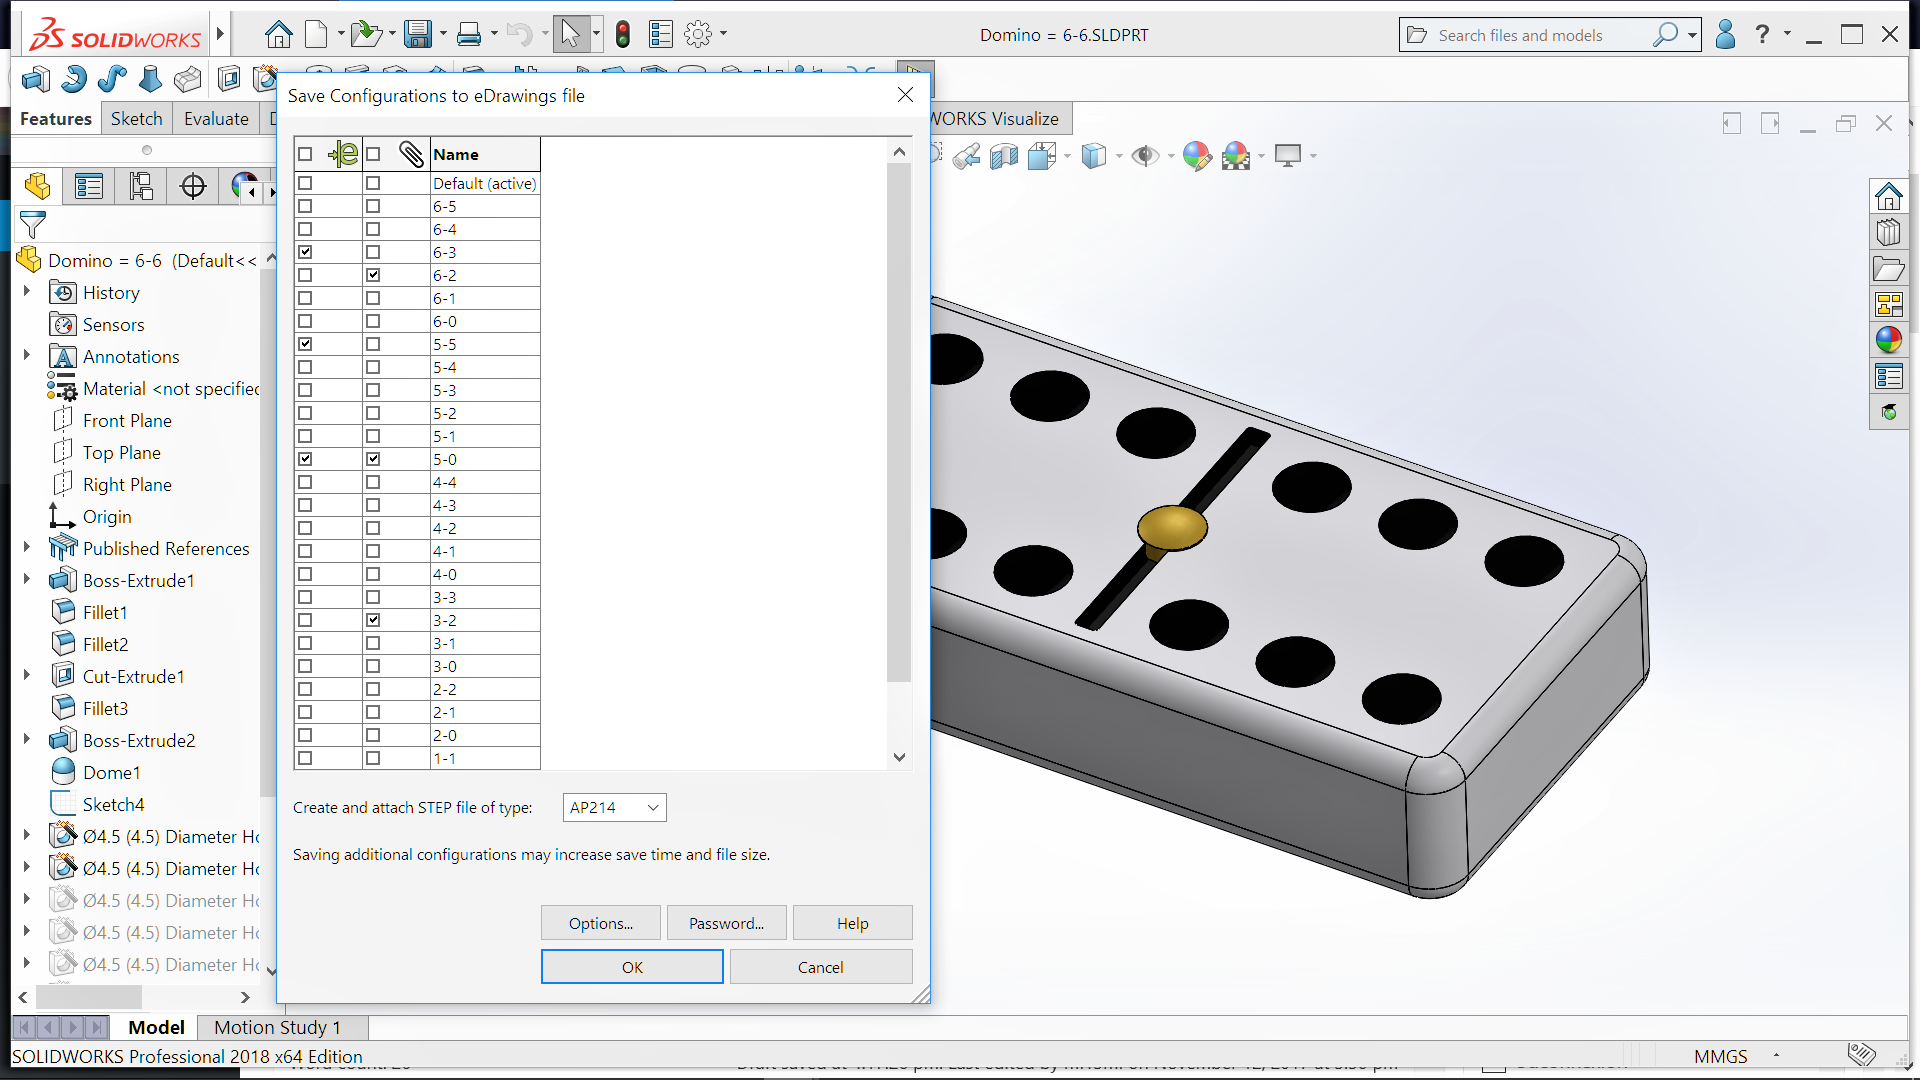 SOLIDWORKS 2018 – STEP & Decals for eDrawings #SOLIDWORKS